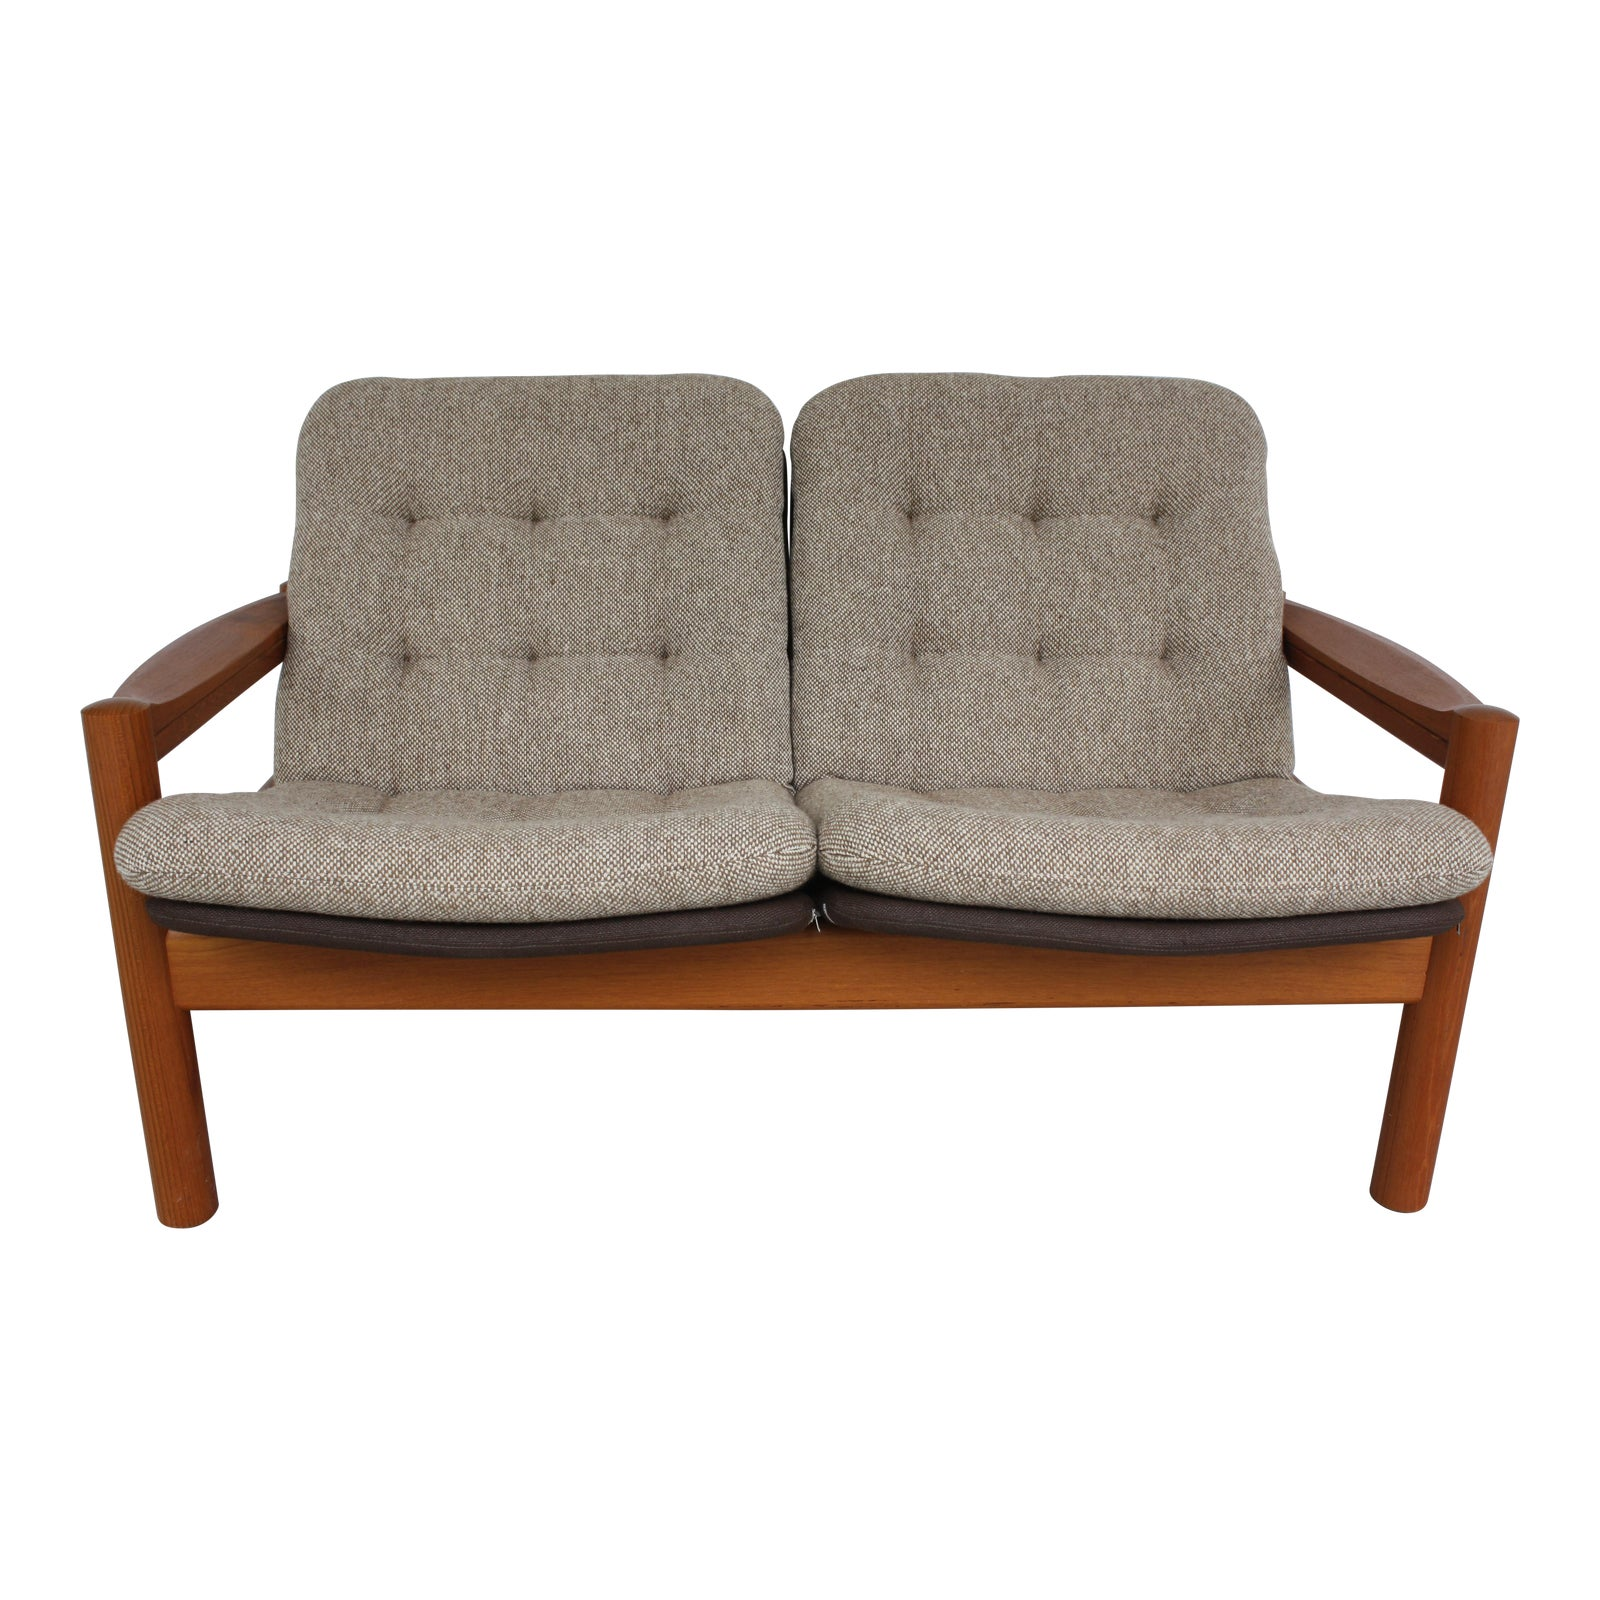 of target tufted furniture gray grey best loveseat couch luxury sleeper tar seat petite fabric sofa love